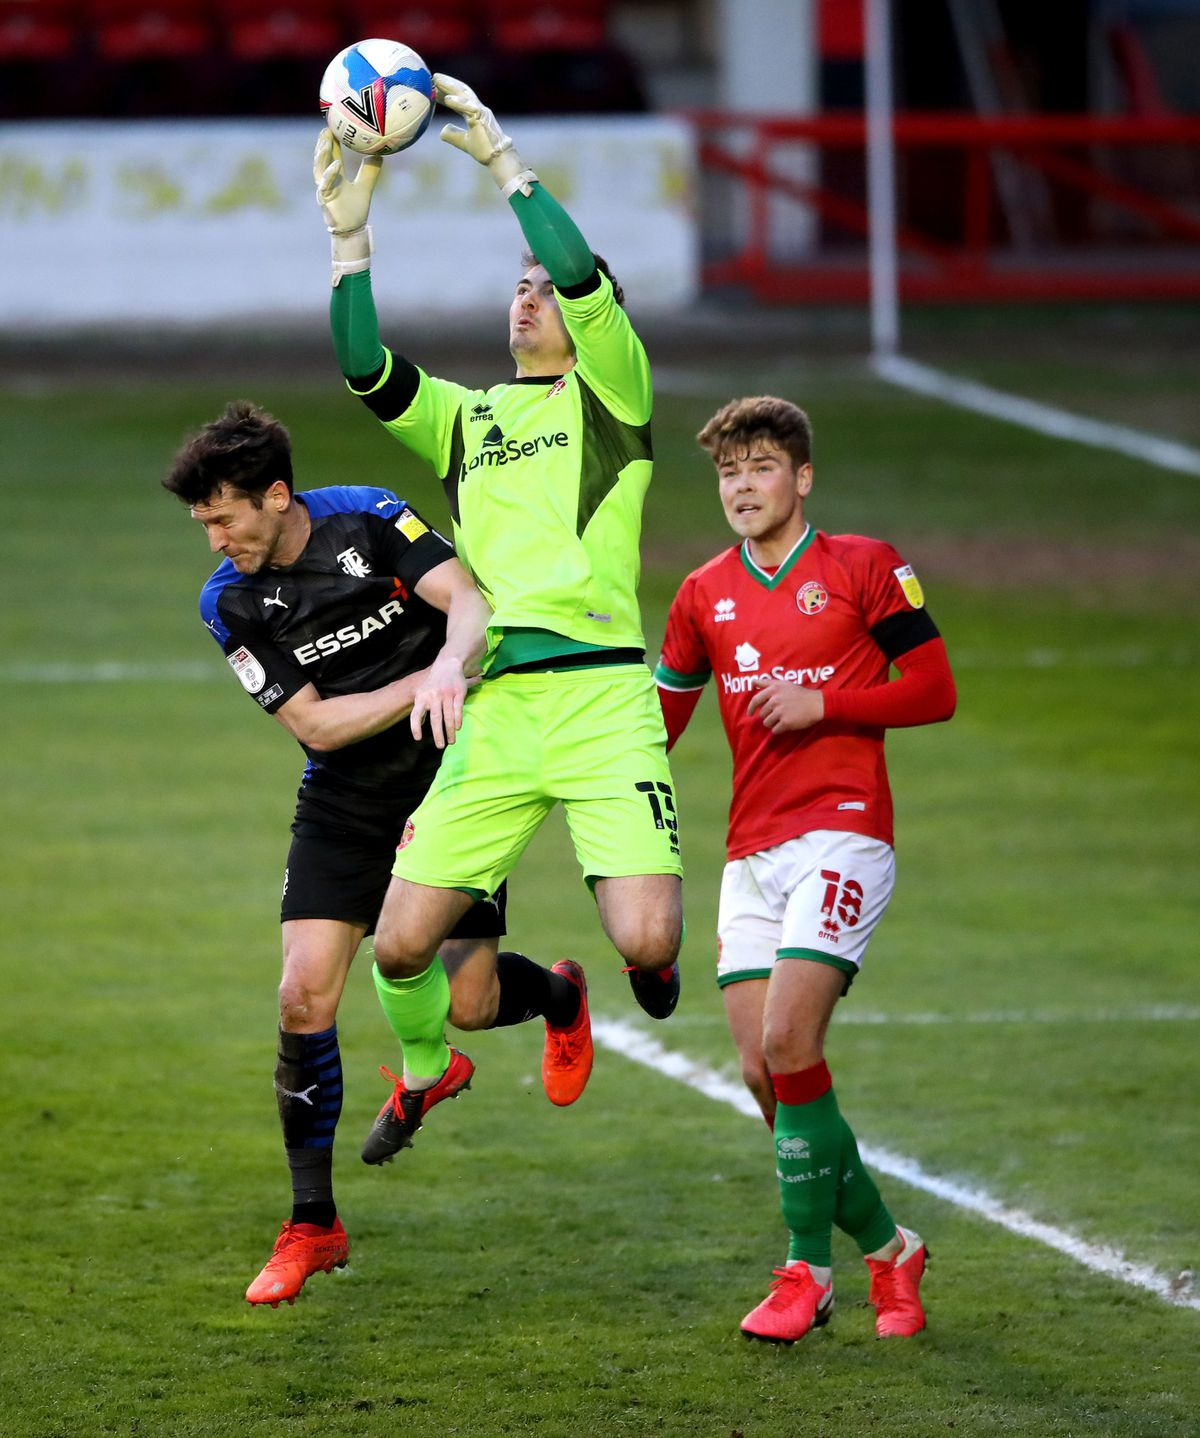 Walsall goalkeeper Jack Rose (centre) and Tranmere Rovers' David Nugent battle for the ball